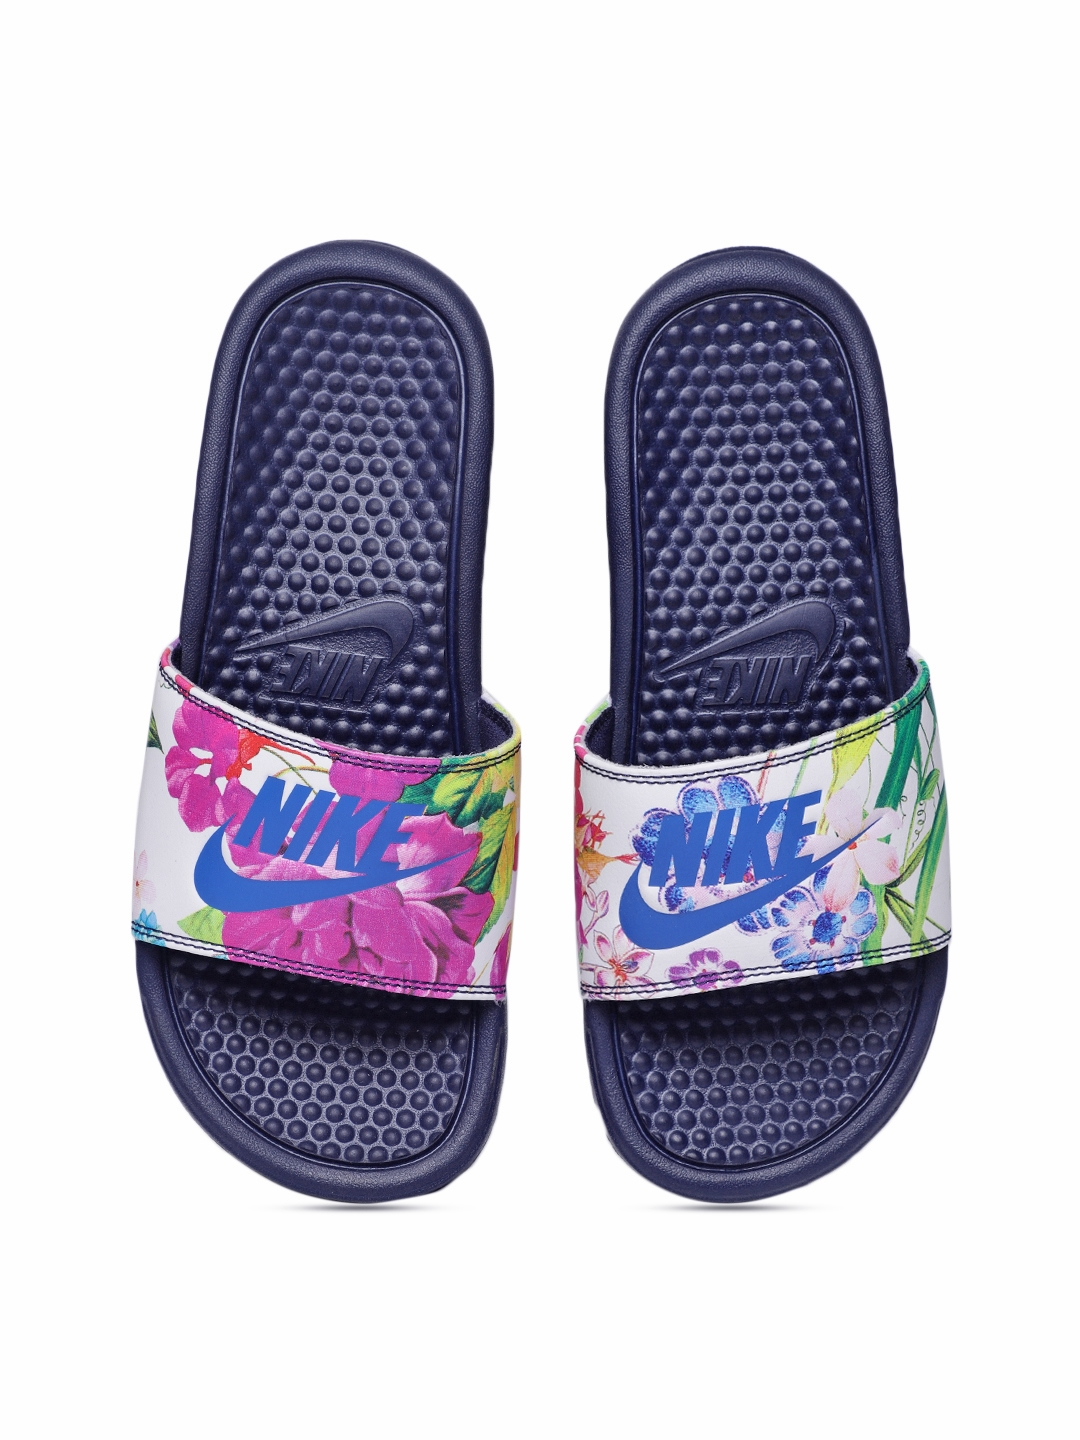 890fadaaeac9f1 Buy Nike Women White   Pink Printed Sliders - Flip Flops for Women ...